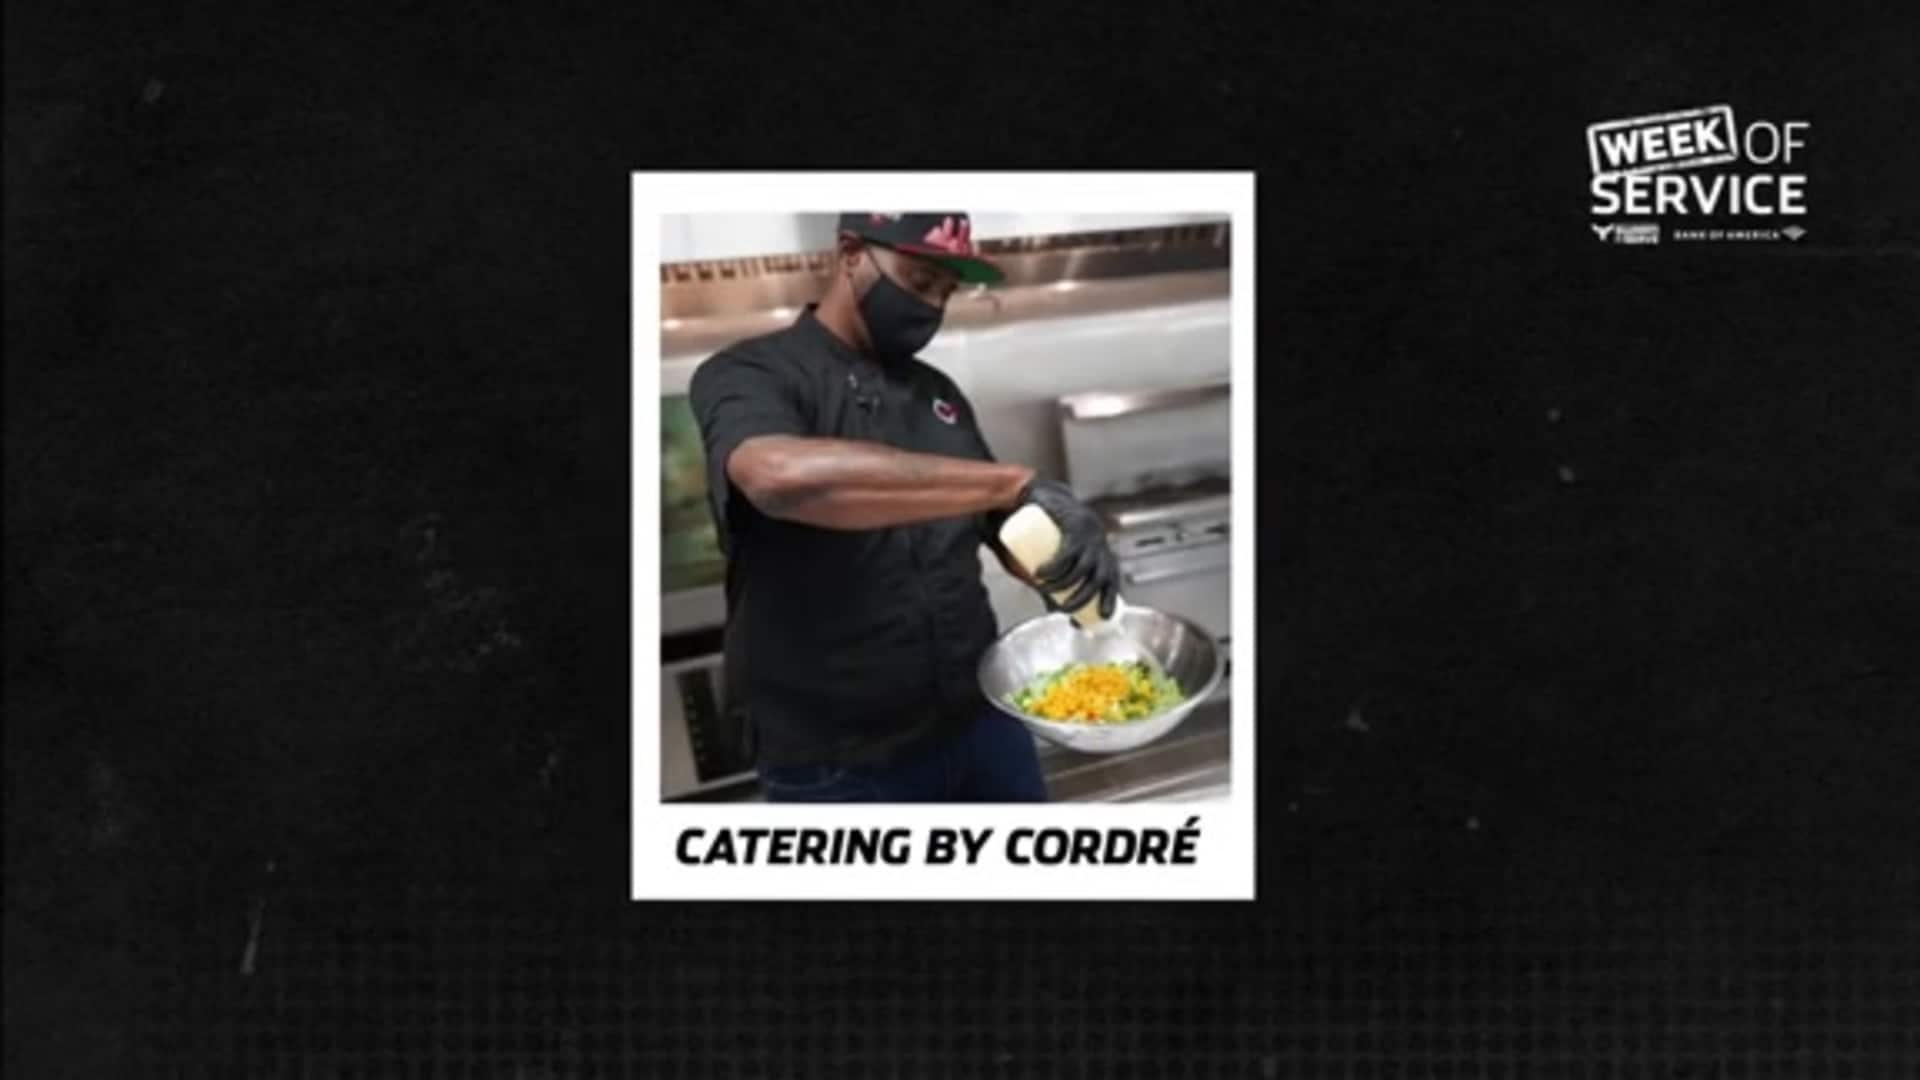 2020 Week of Service Black-Owned Business Spotlight - Catering by Cordré